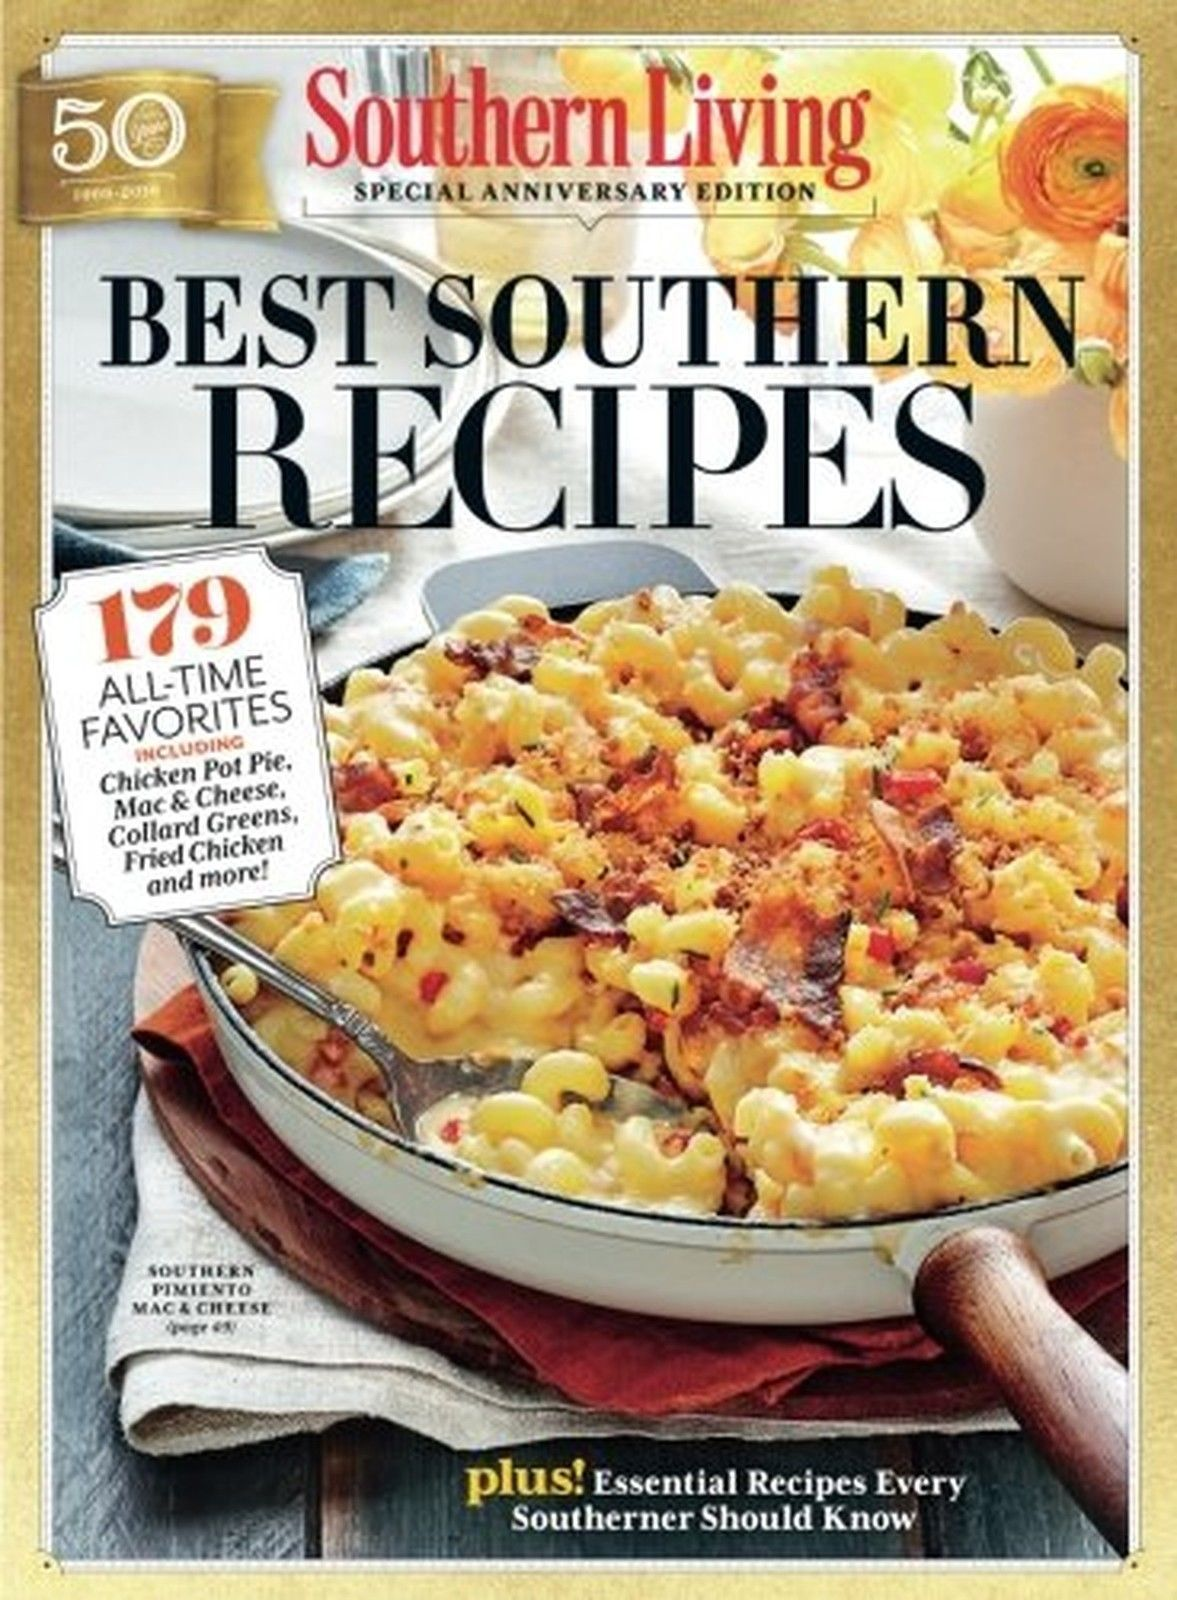 Favorite Recipes Southern recipes, Recipes, Southern dishes